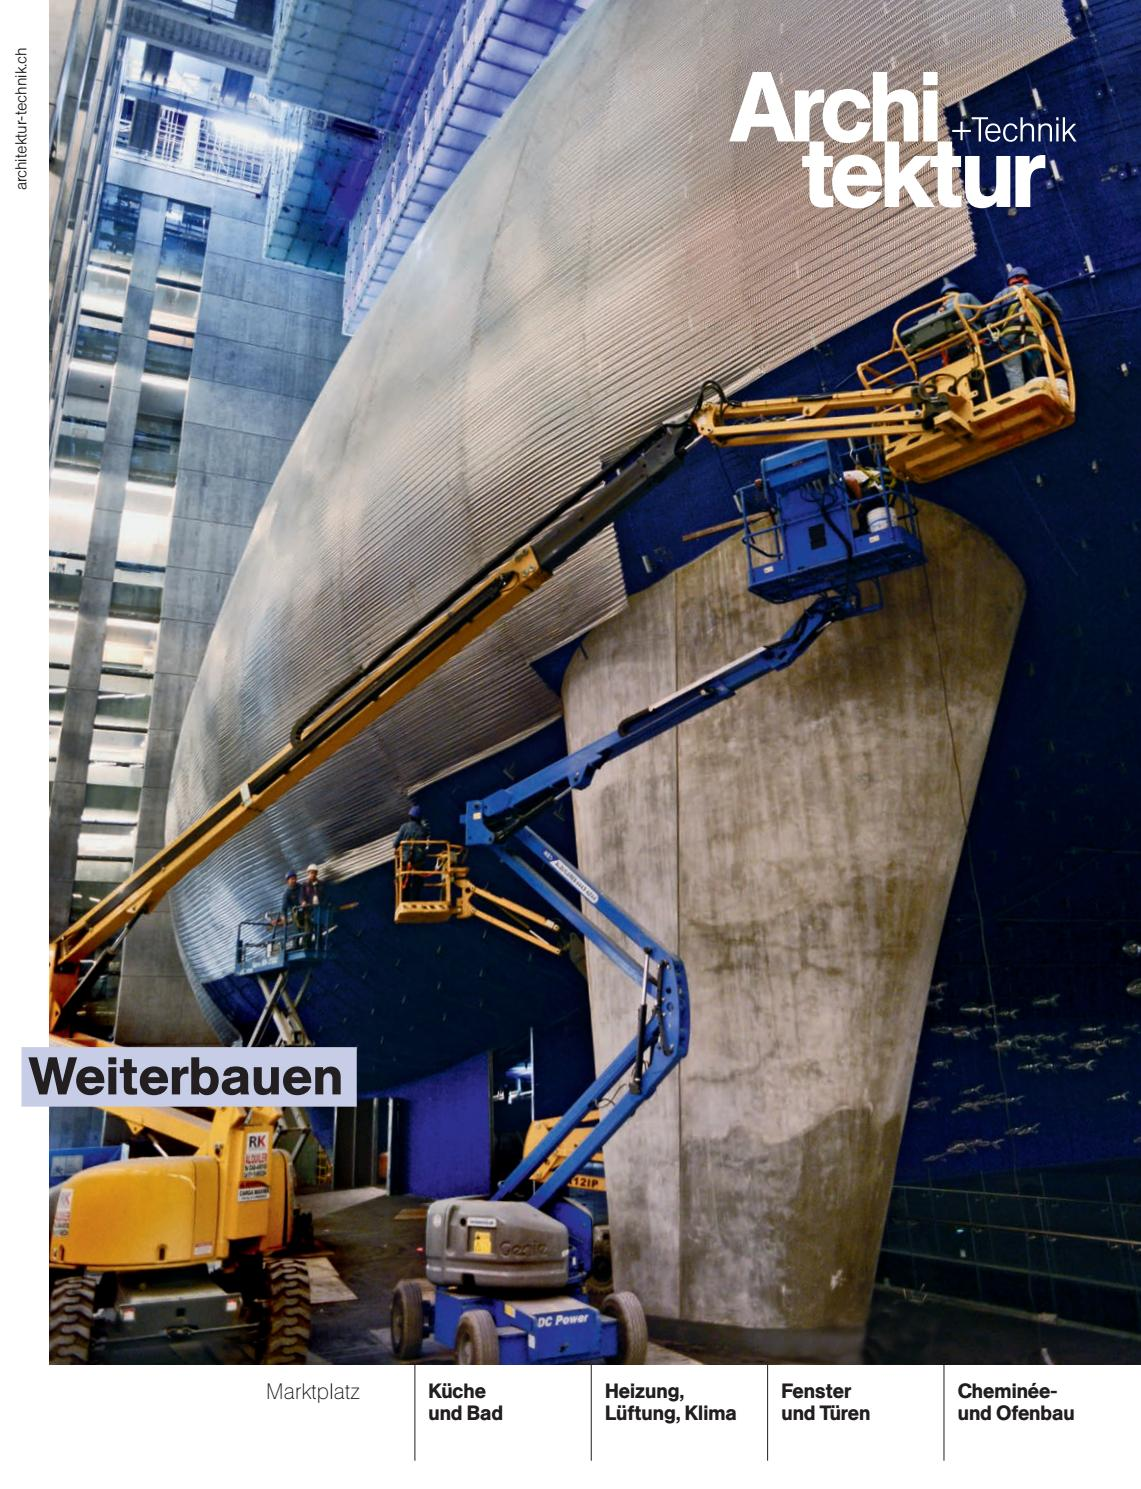 Architektur+Technik 08 2016 by BL Verlag AG - issuu